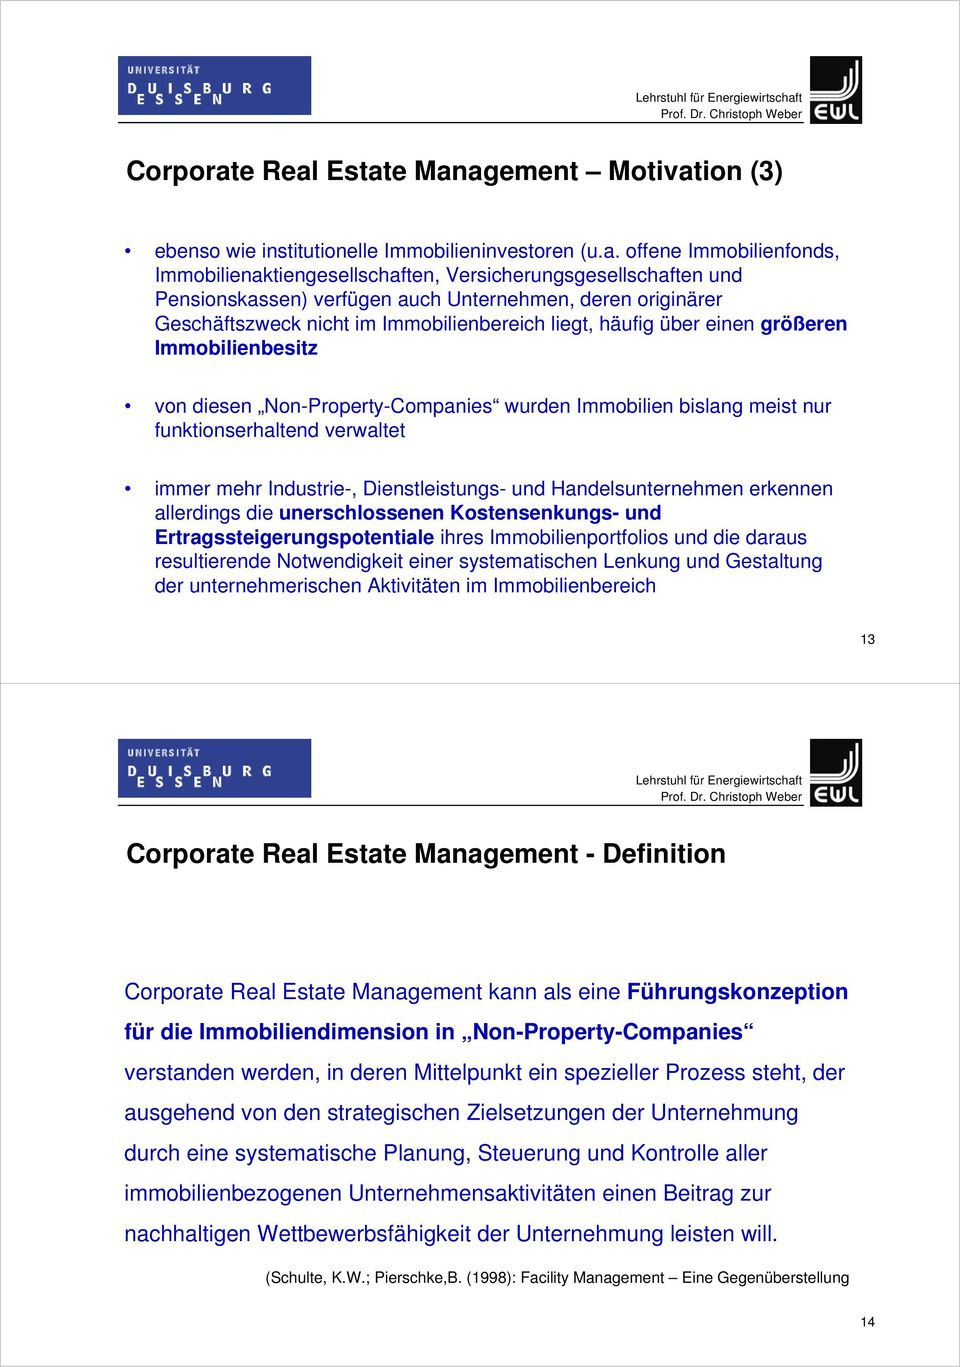 Estate Management Motivation (3) ebenso wie institutionelle Immobilieninvestoren (u.a. offene Immobilienfonds, Immobilienaktiengesellschaften, Versicherungsgesellschaften und Pensionskassen) verfügen